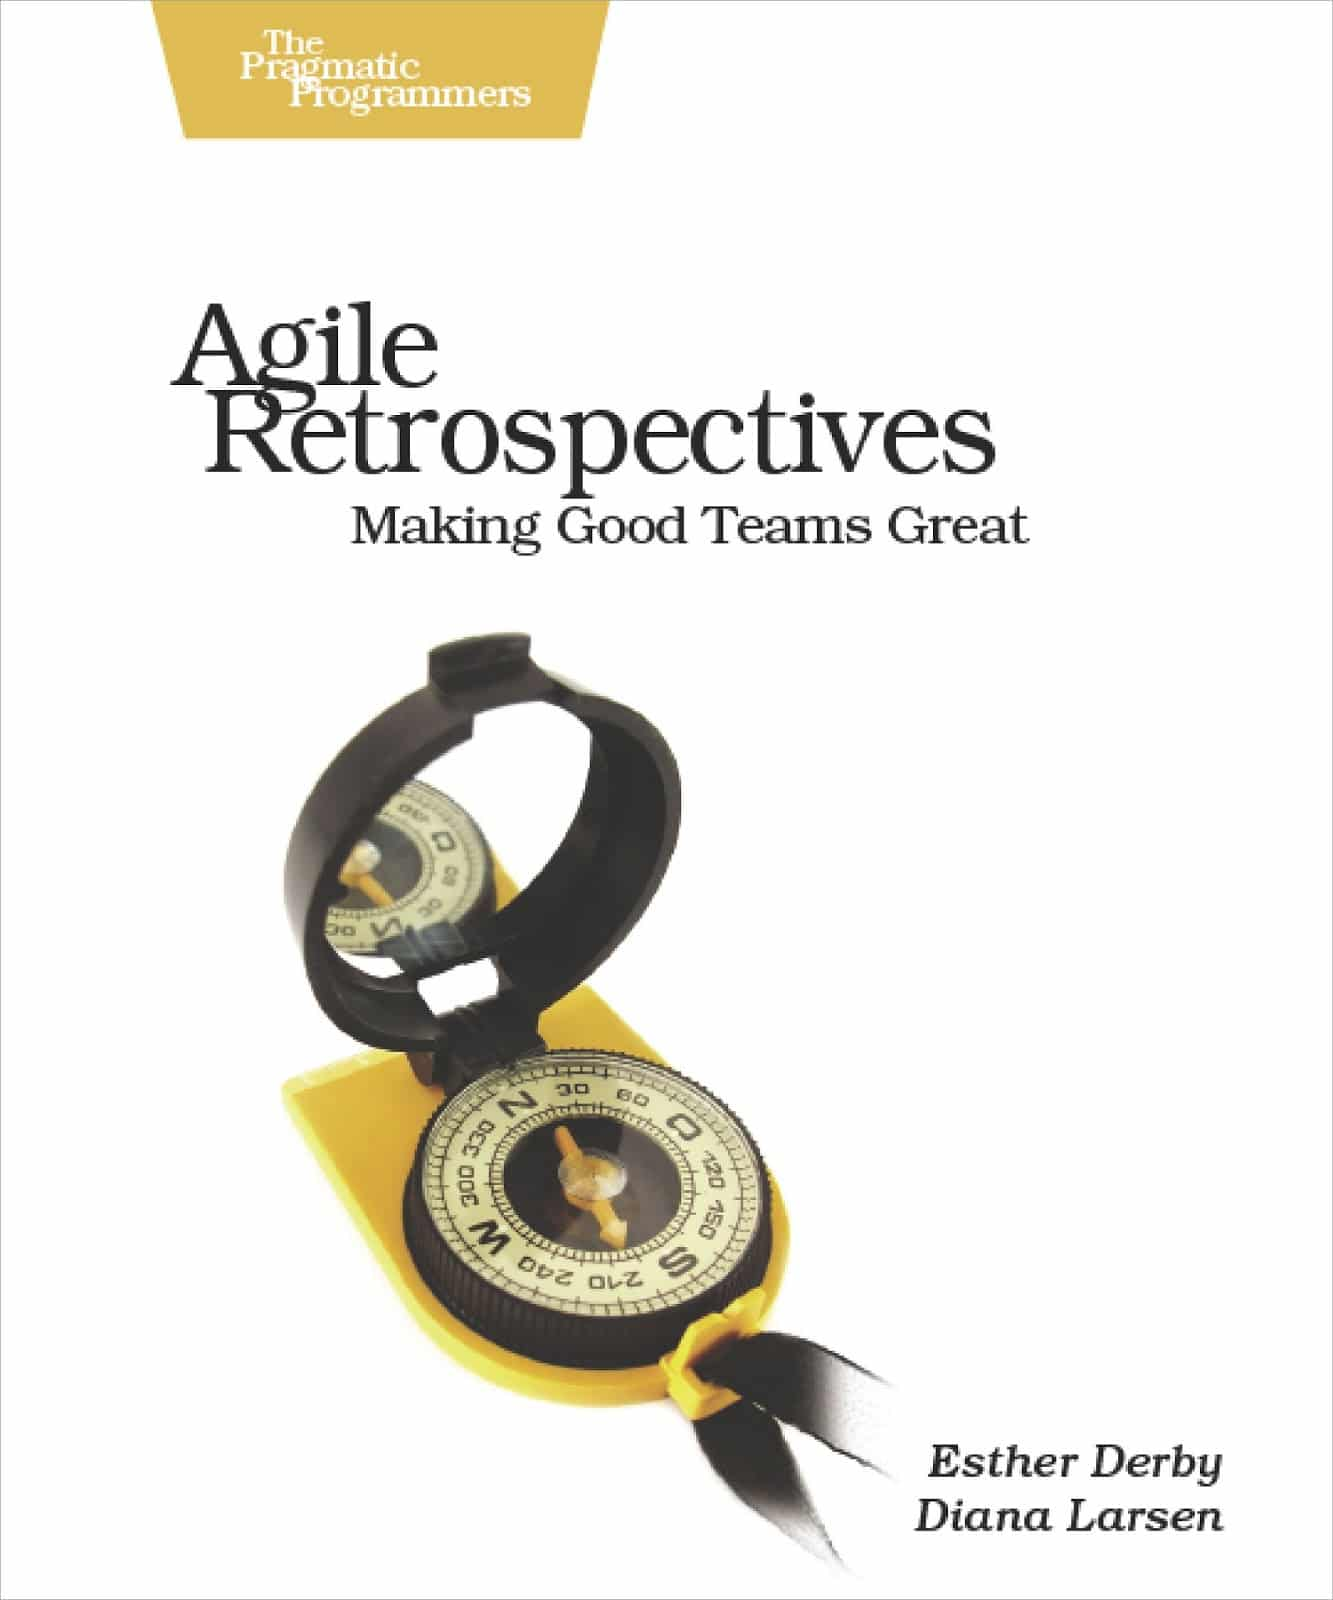 Agile Retrospectives: Makign Good Teams Great by Esther Derby and Diana Larsen